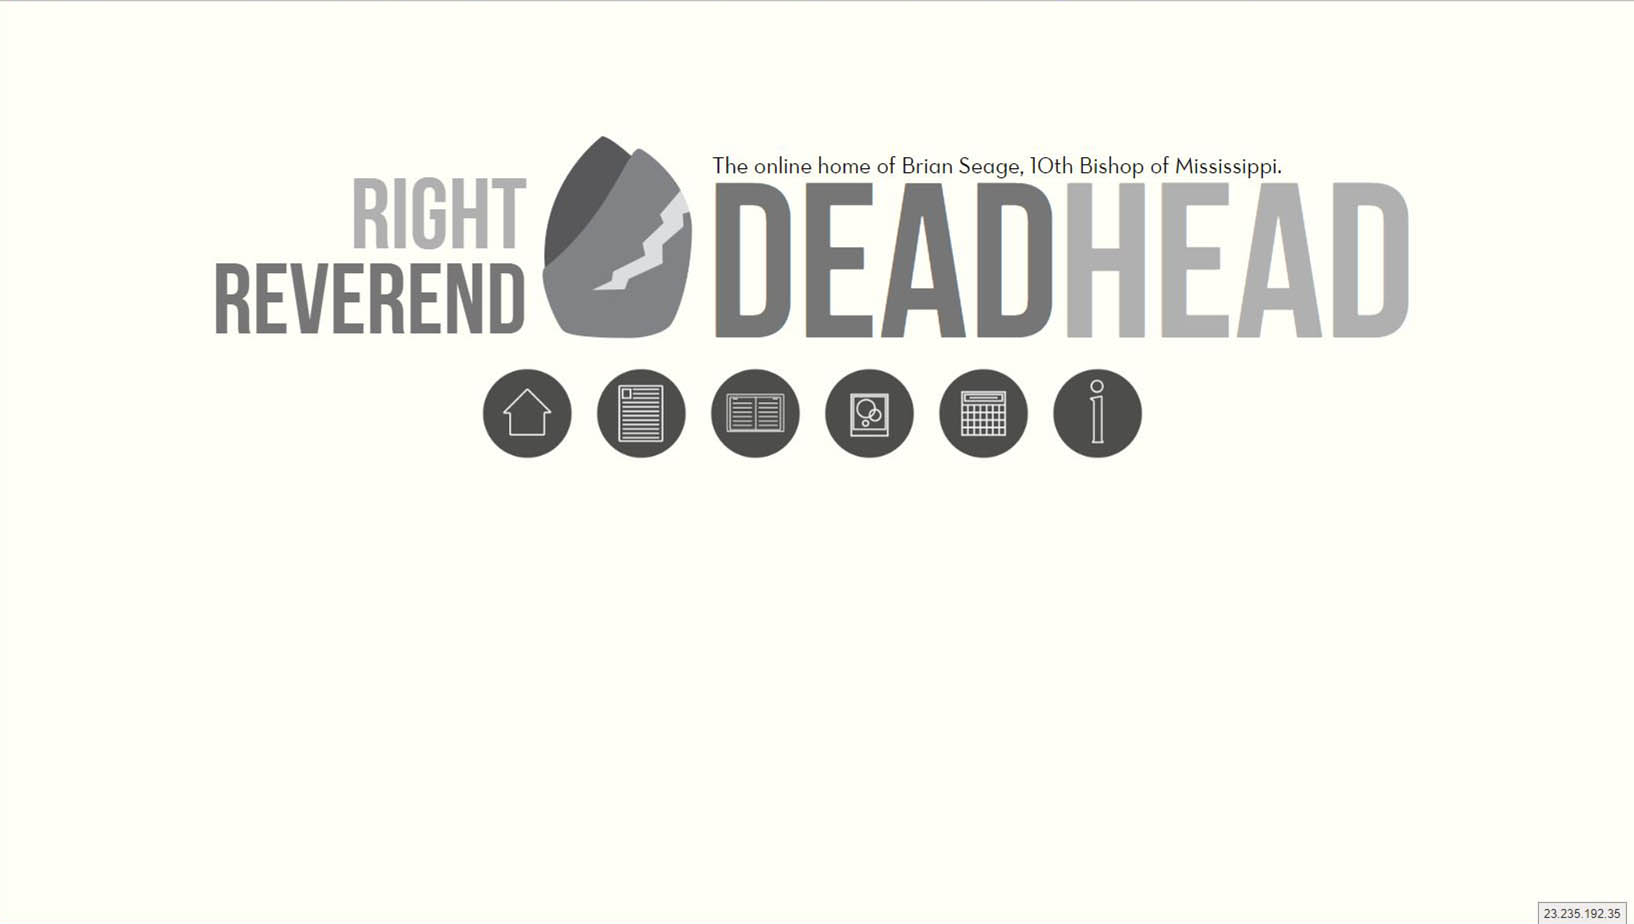 Right Reverend Deadhead  |  Blog and information sight for Bishop Brian Seage